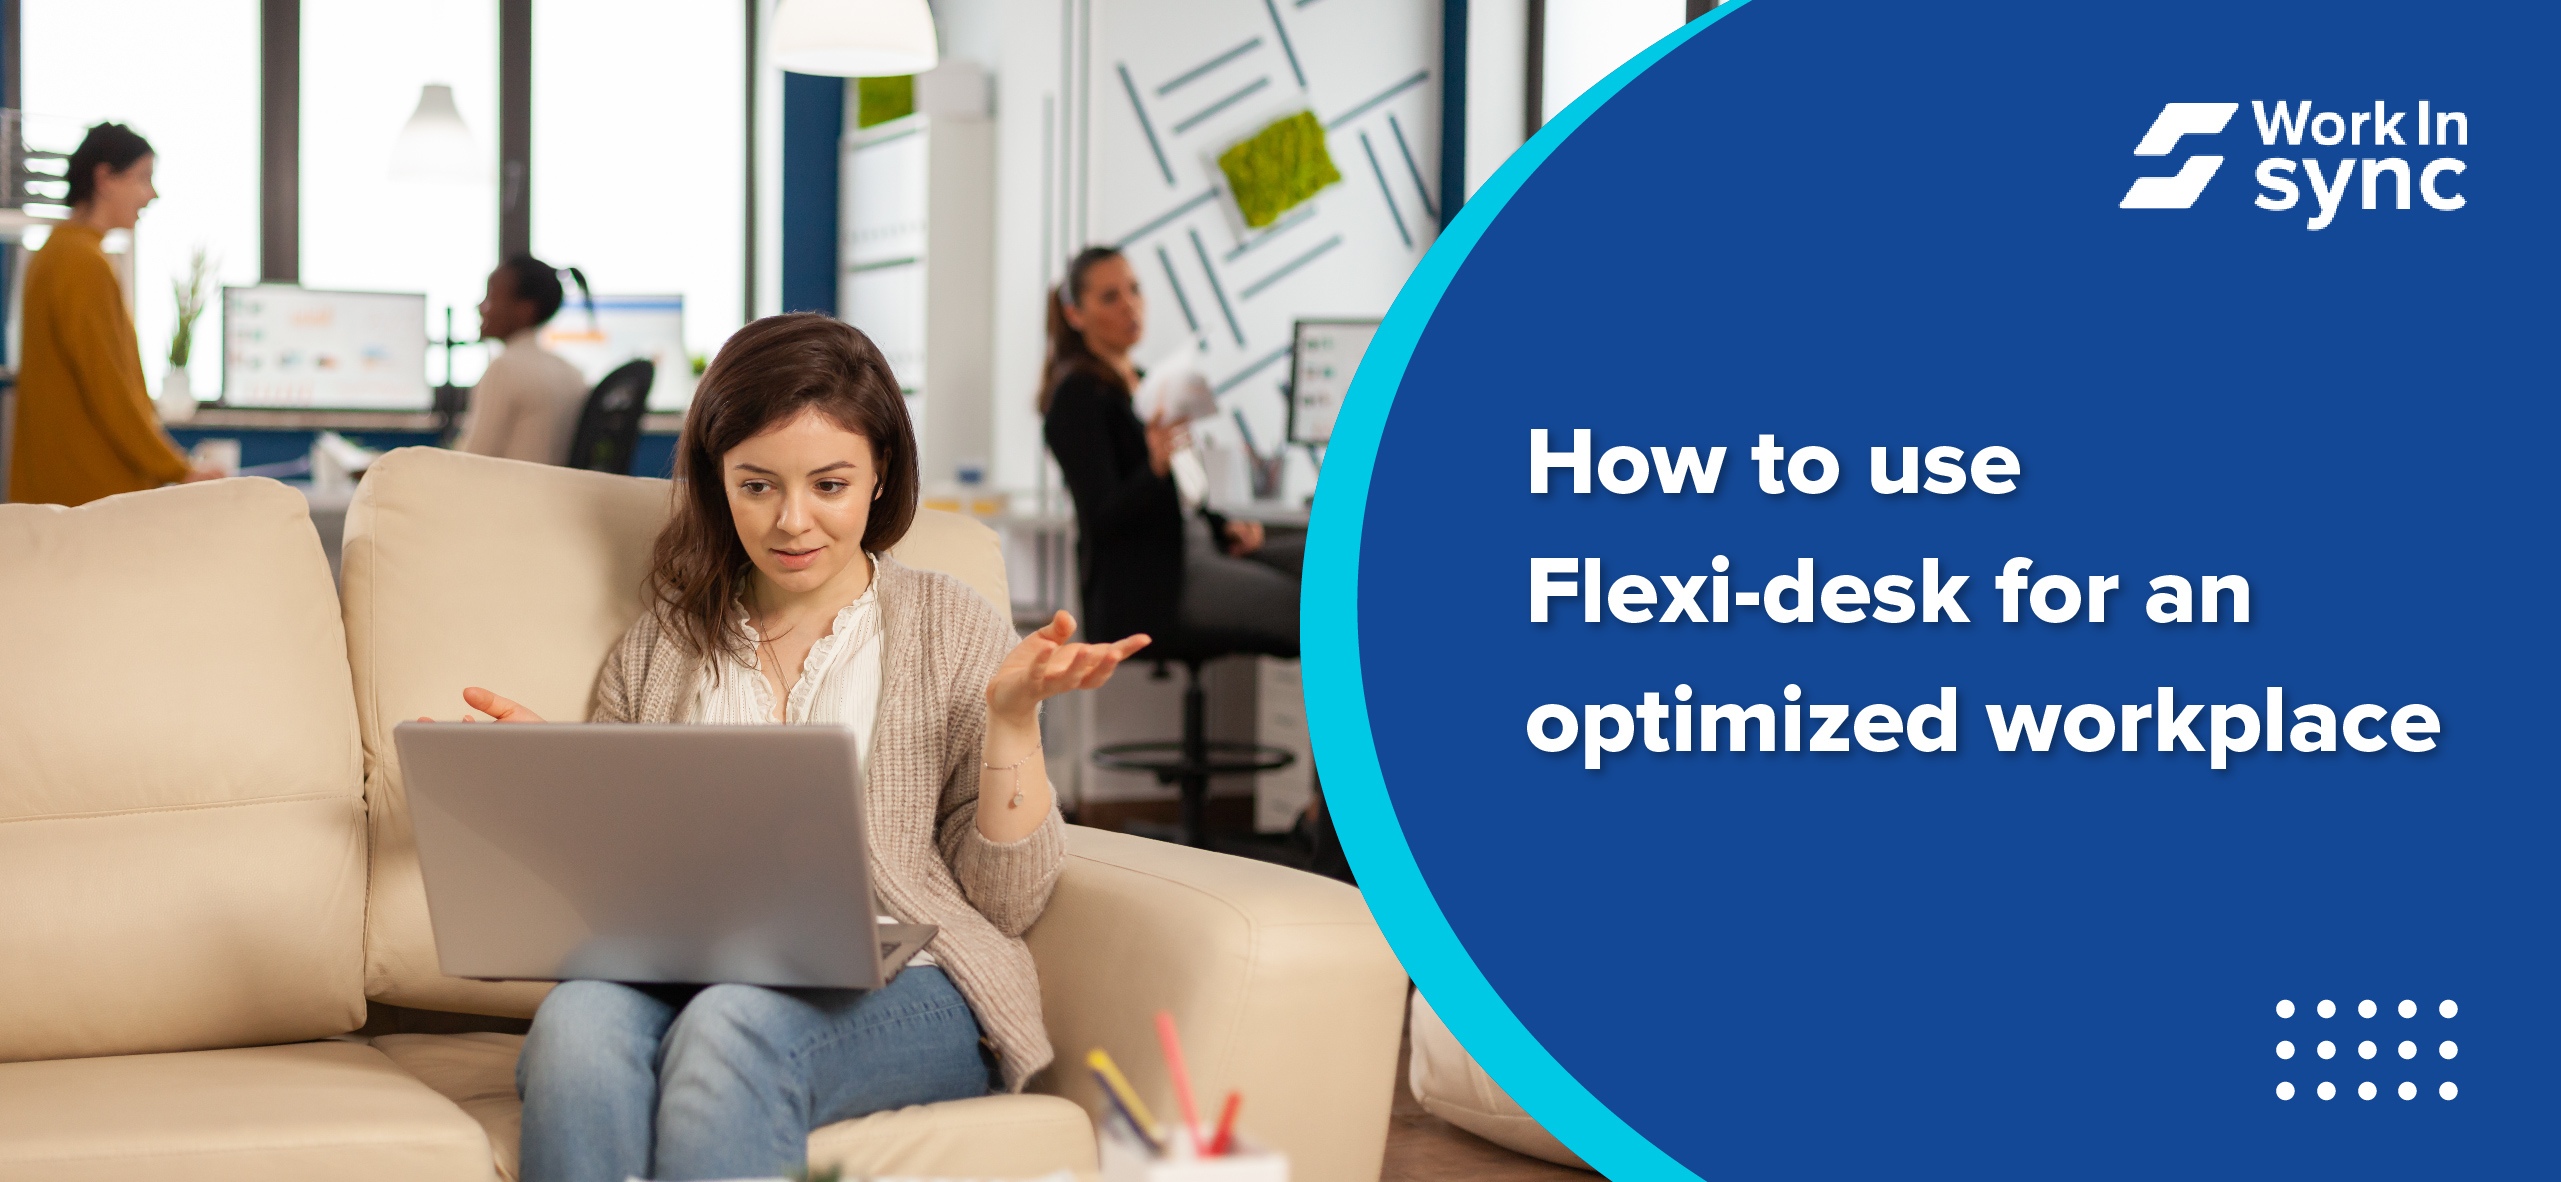 How to Use Flexi-desk for an Optimized Workplace